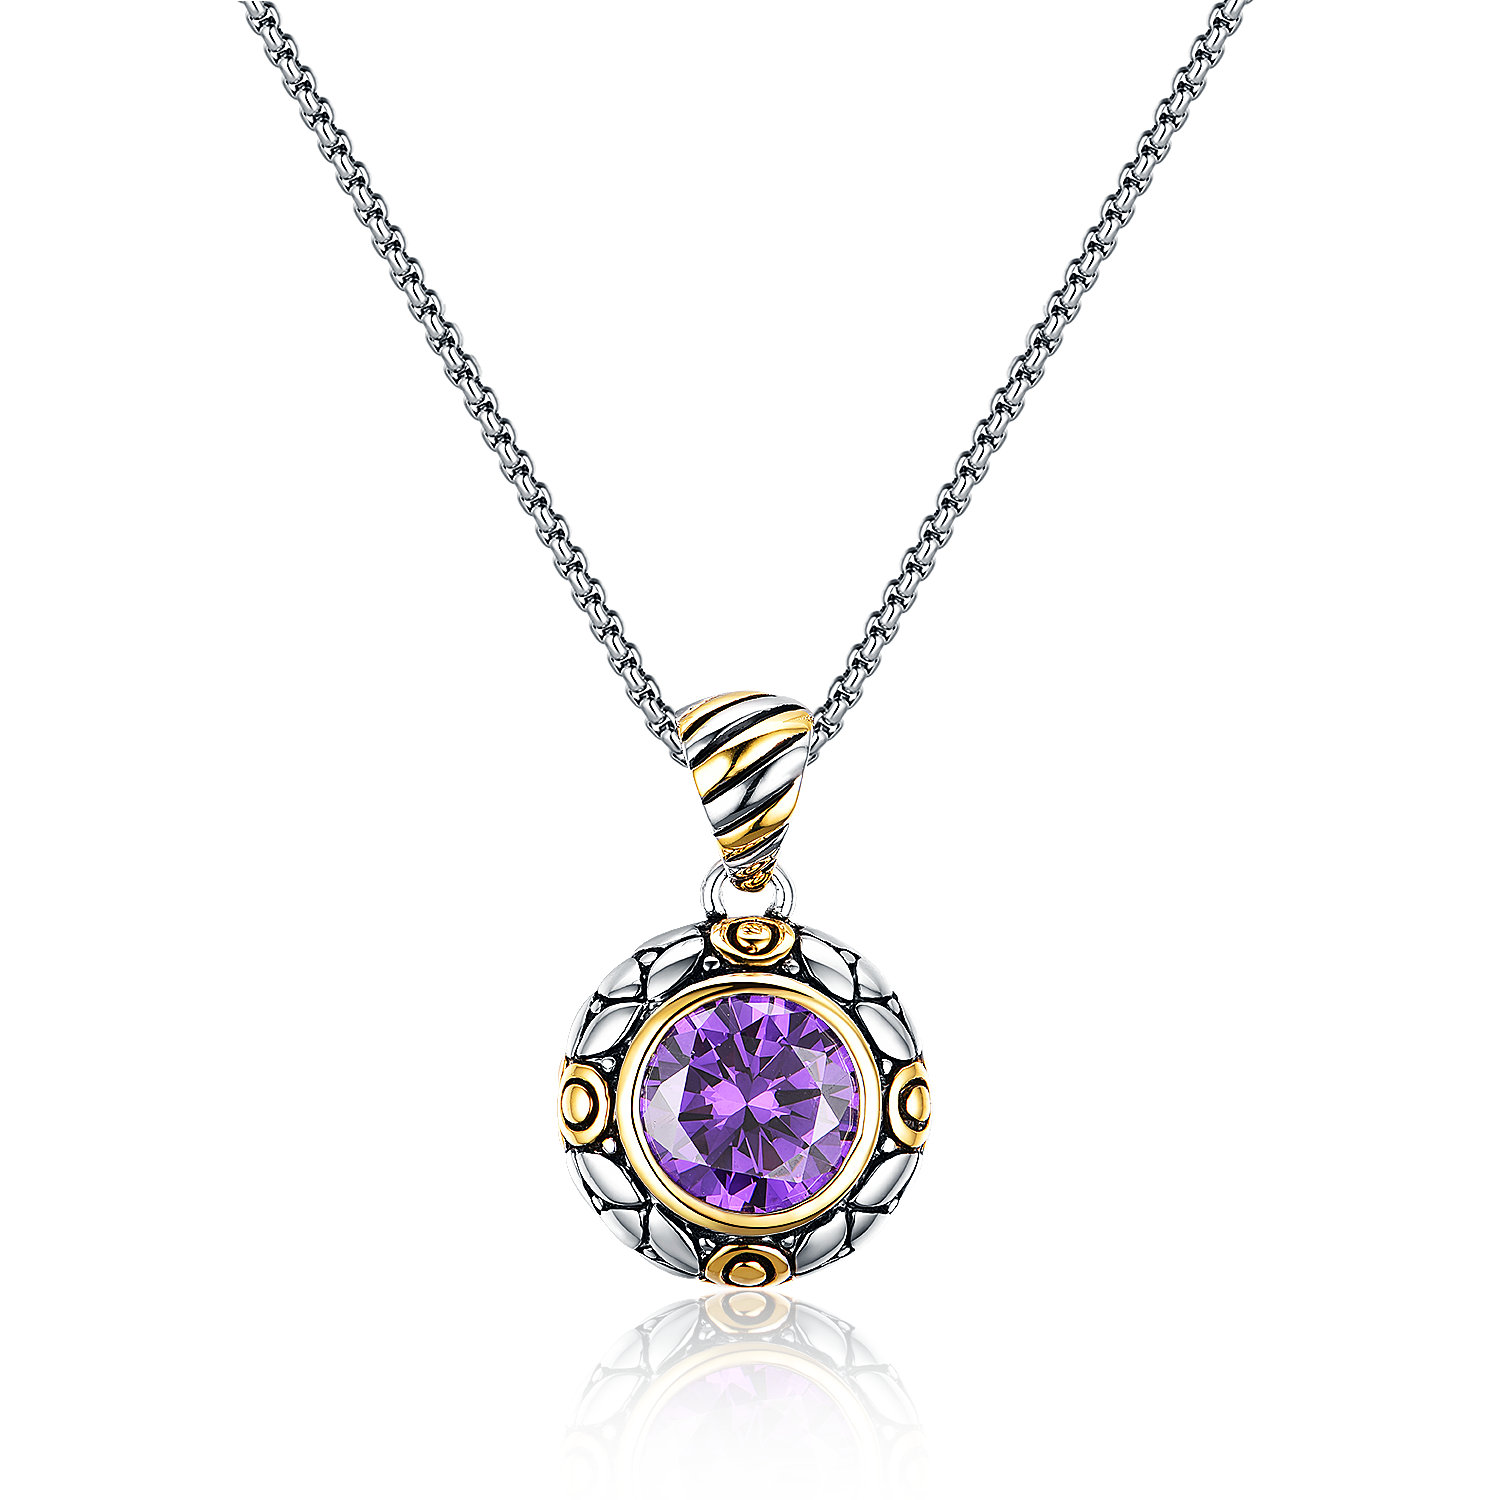 ST2769P-Designer inspired 2-tone Round Pendant with a bezel Amethyst CZ suspends a 18inch 2mm box chain with  2